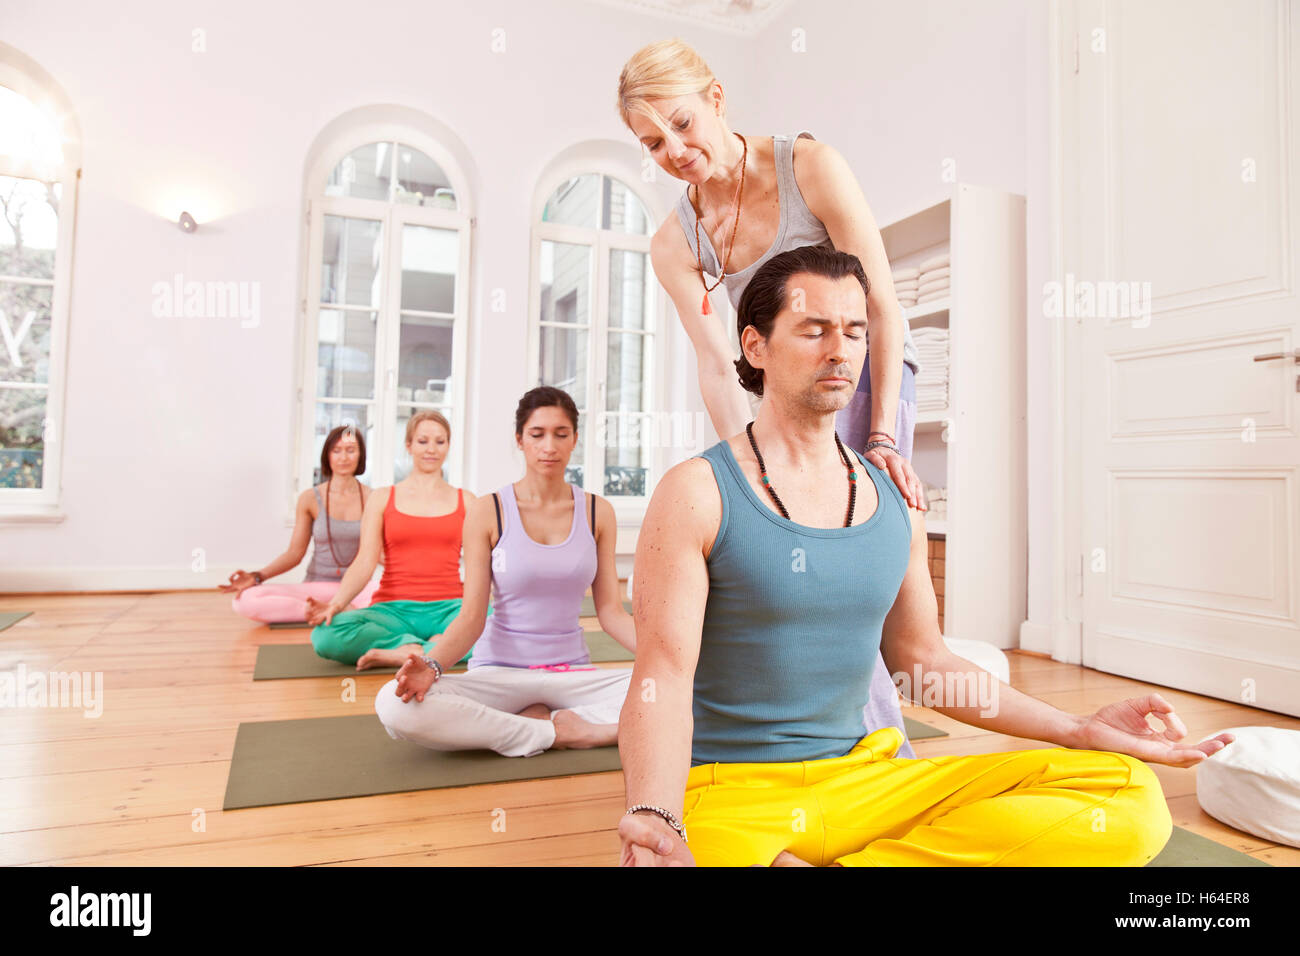 Group of people in yoga studio sitting in Lotus pose while instructor straightens their backs - Stock Image